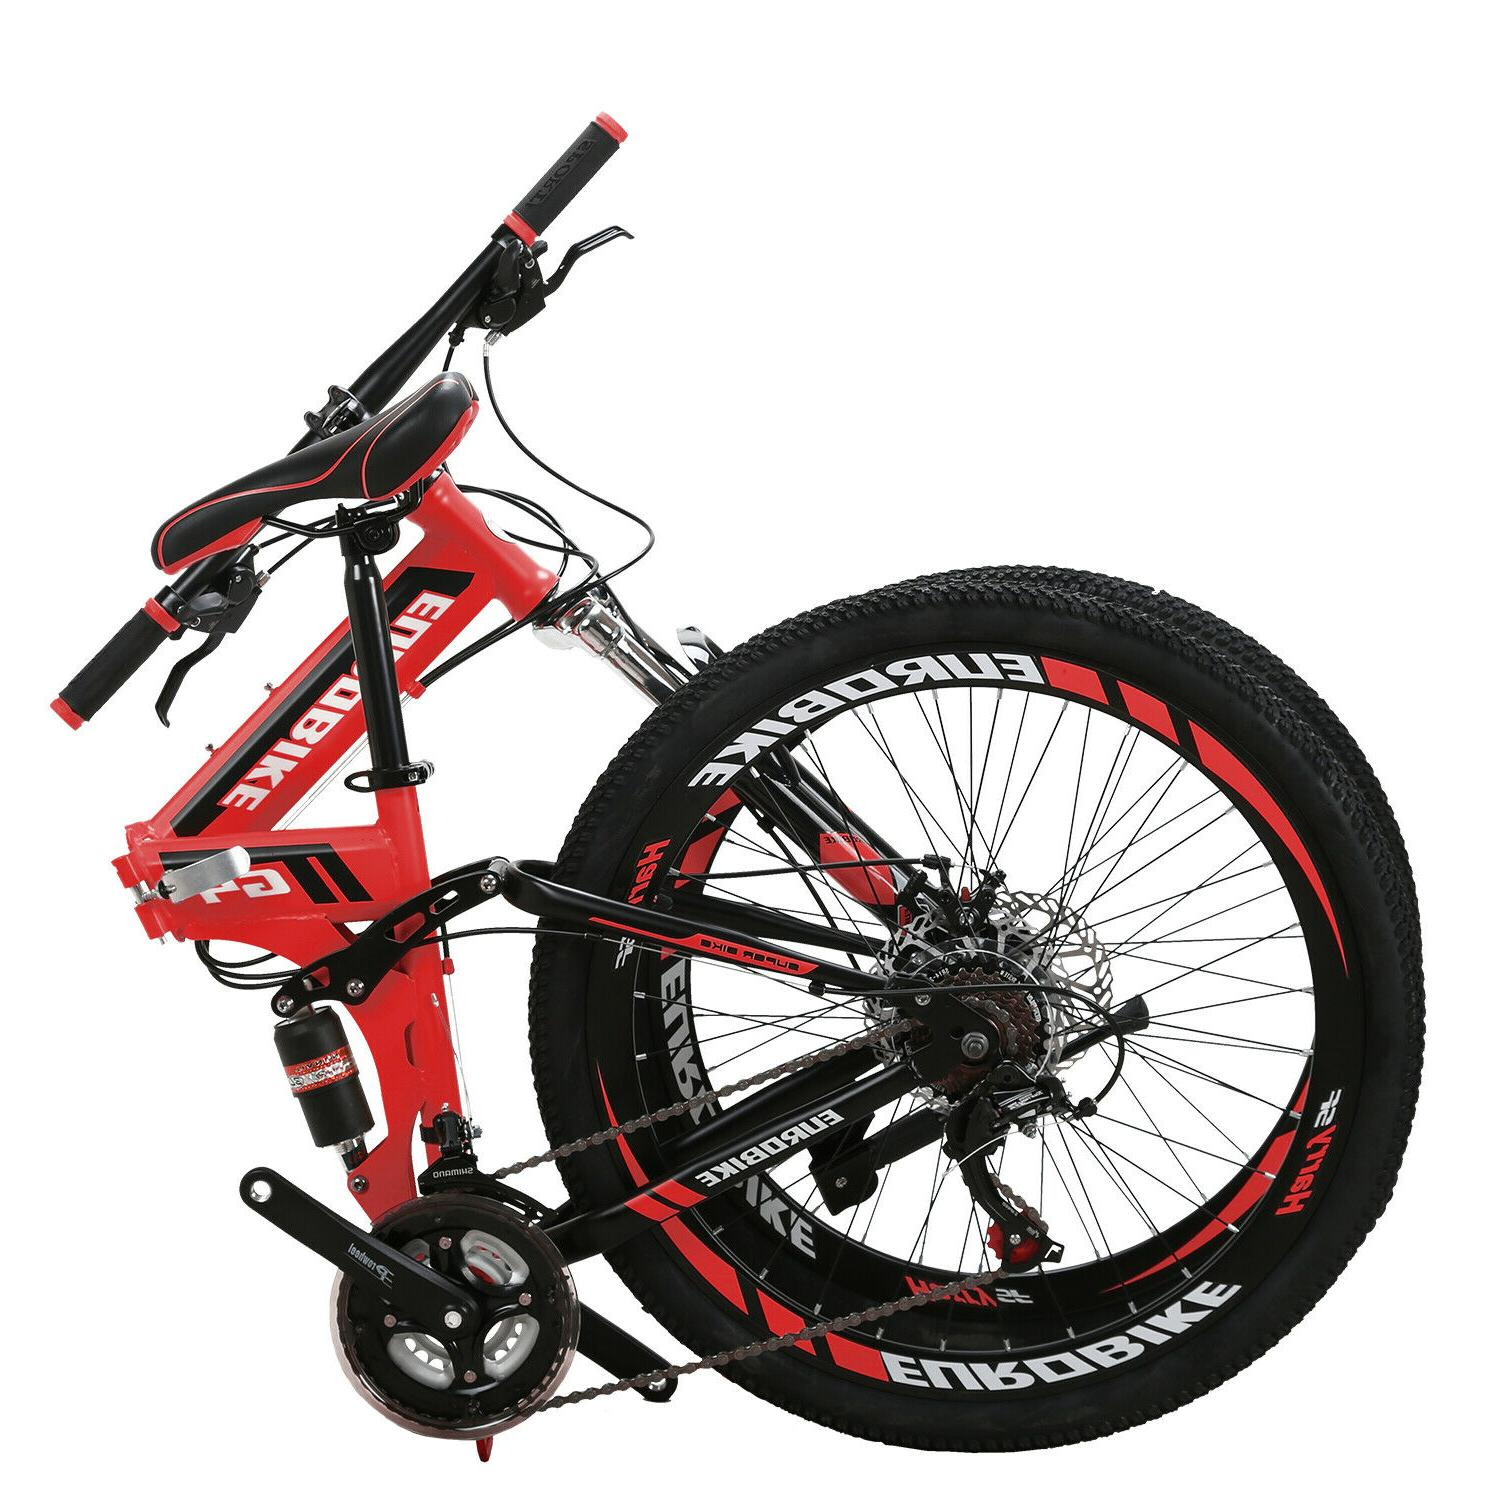 26 full suspension mountain bike 21 speed